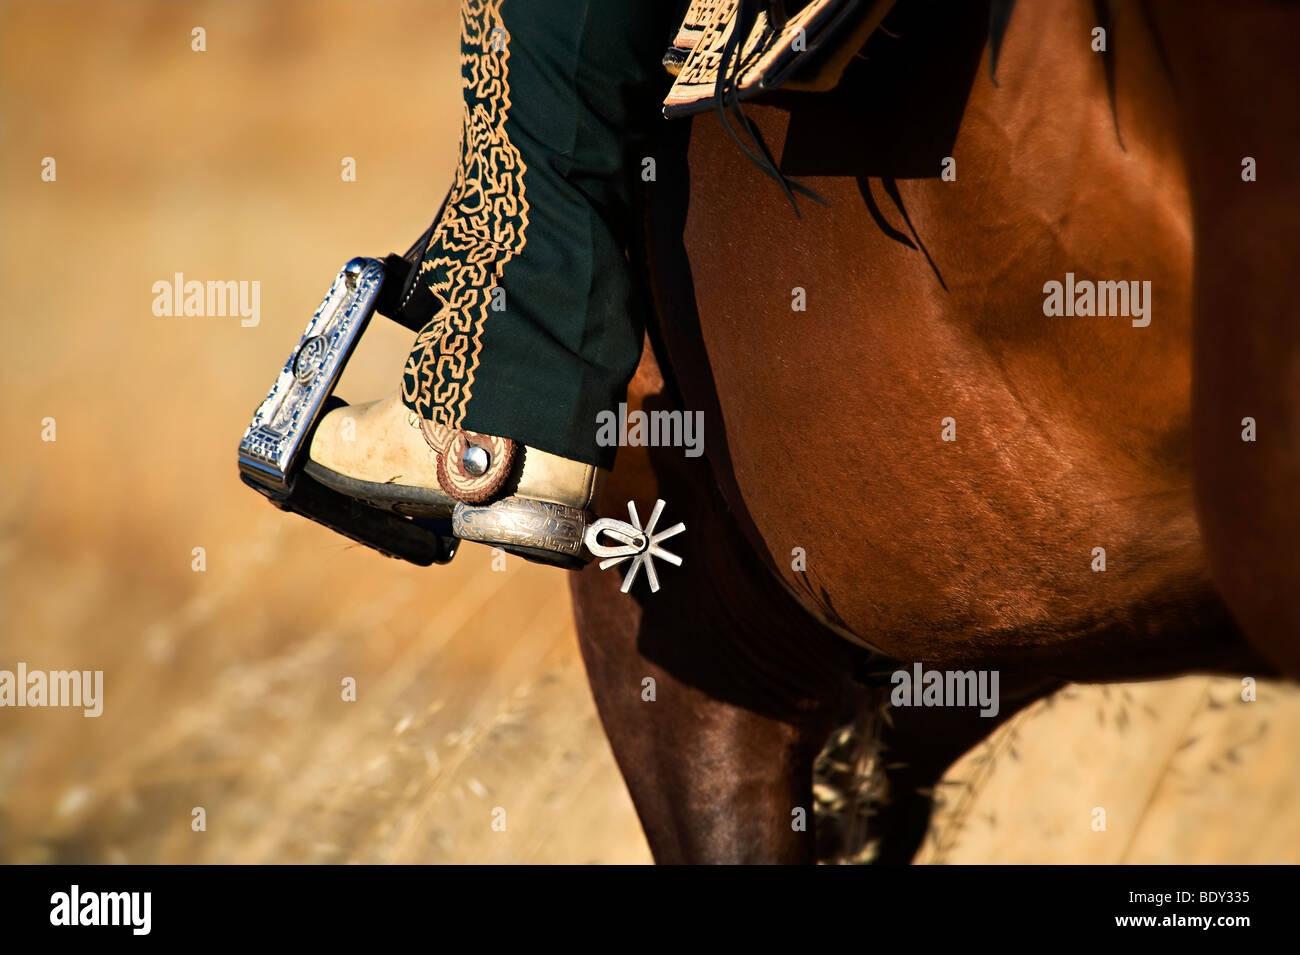 Charro Rider's Spur and Boot Detail on Horseback - Stock Image